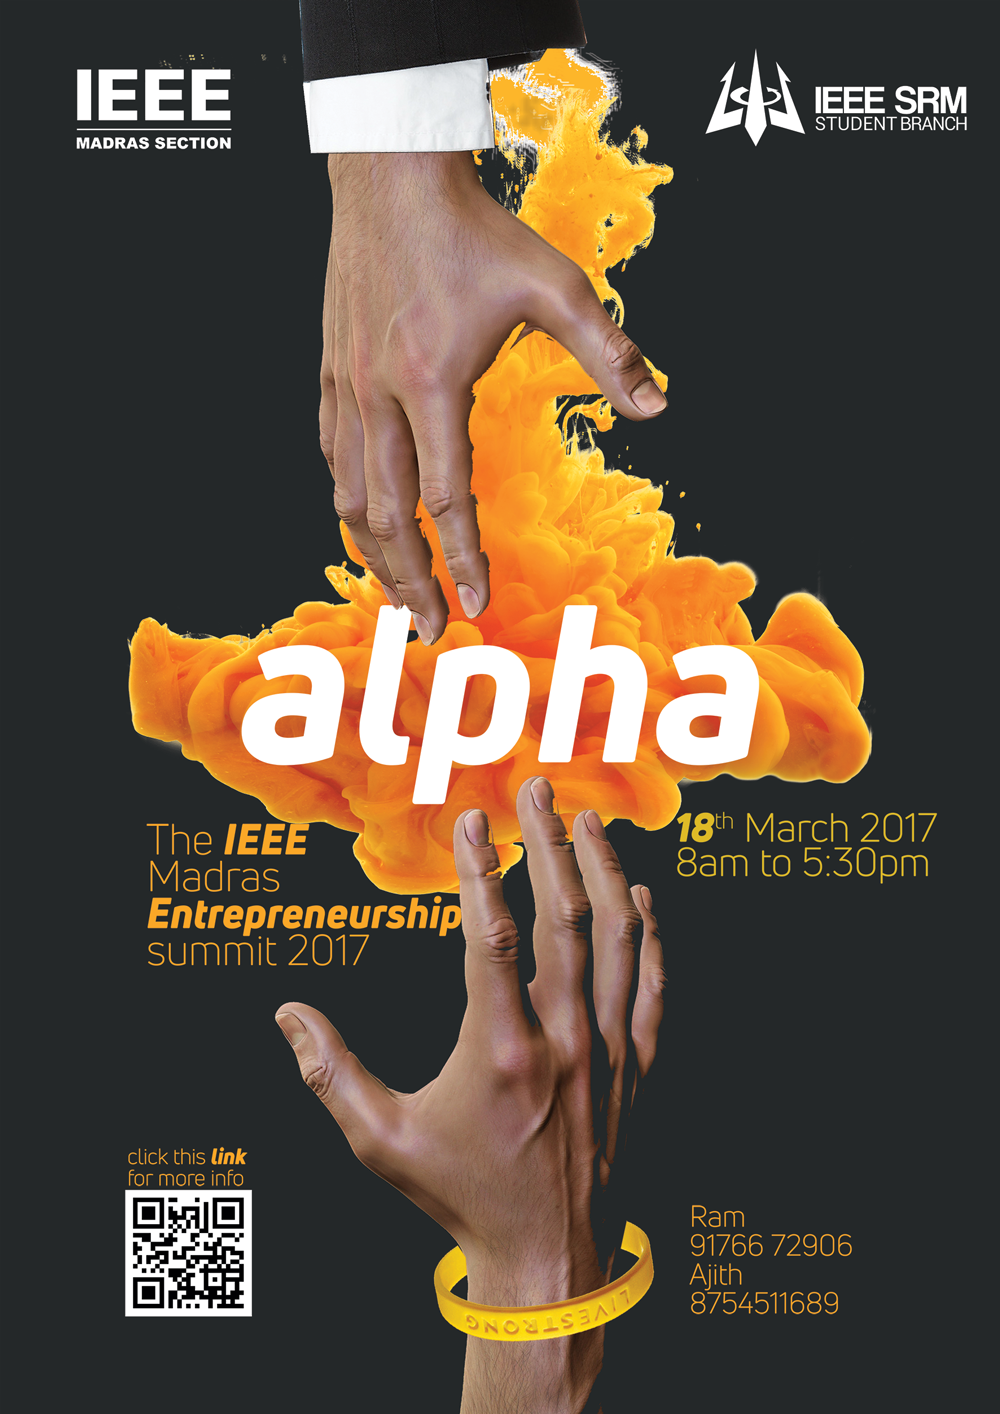 Alpha - The IEEE Madras Entrepreneurship Summit 2017 - Explara